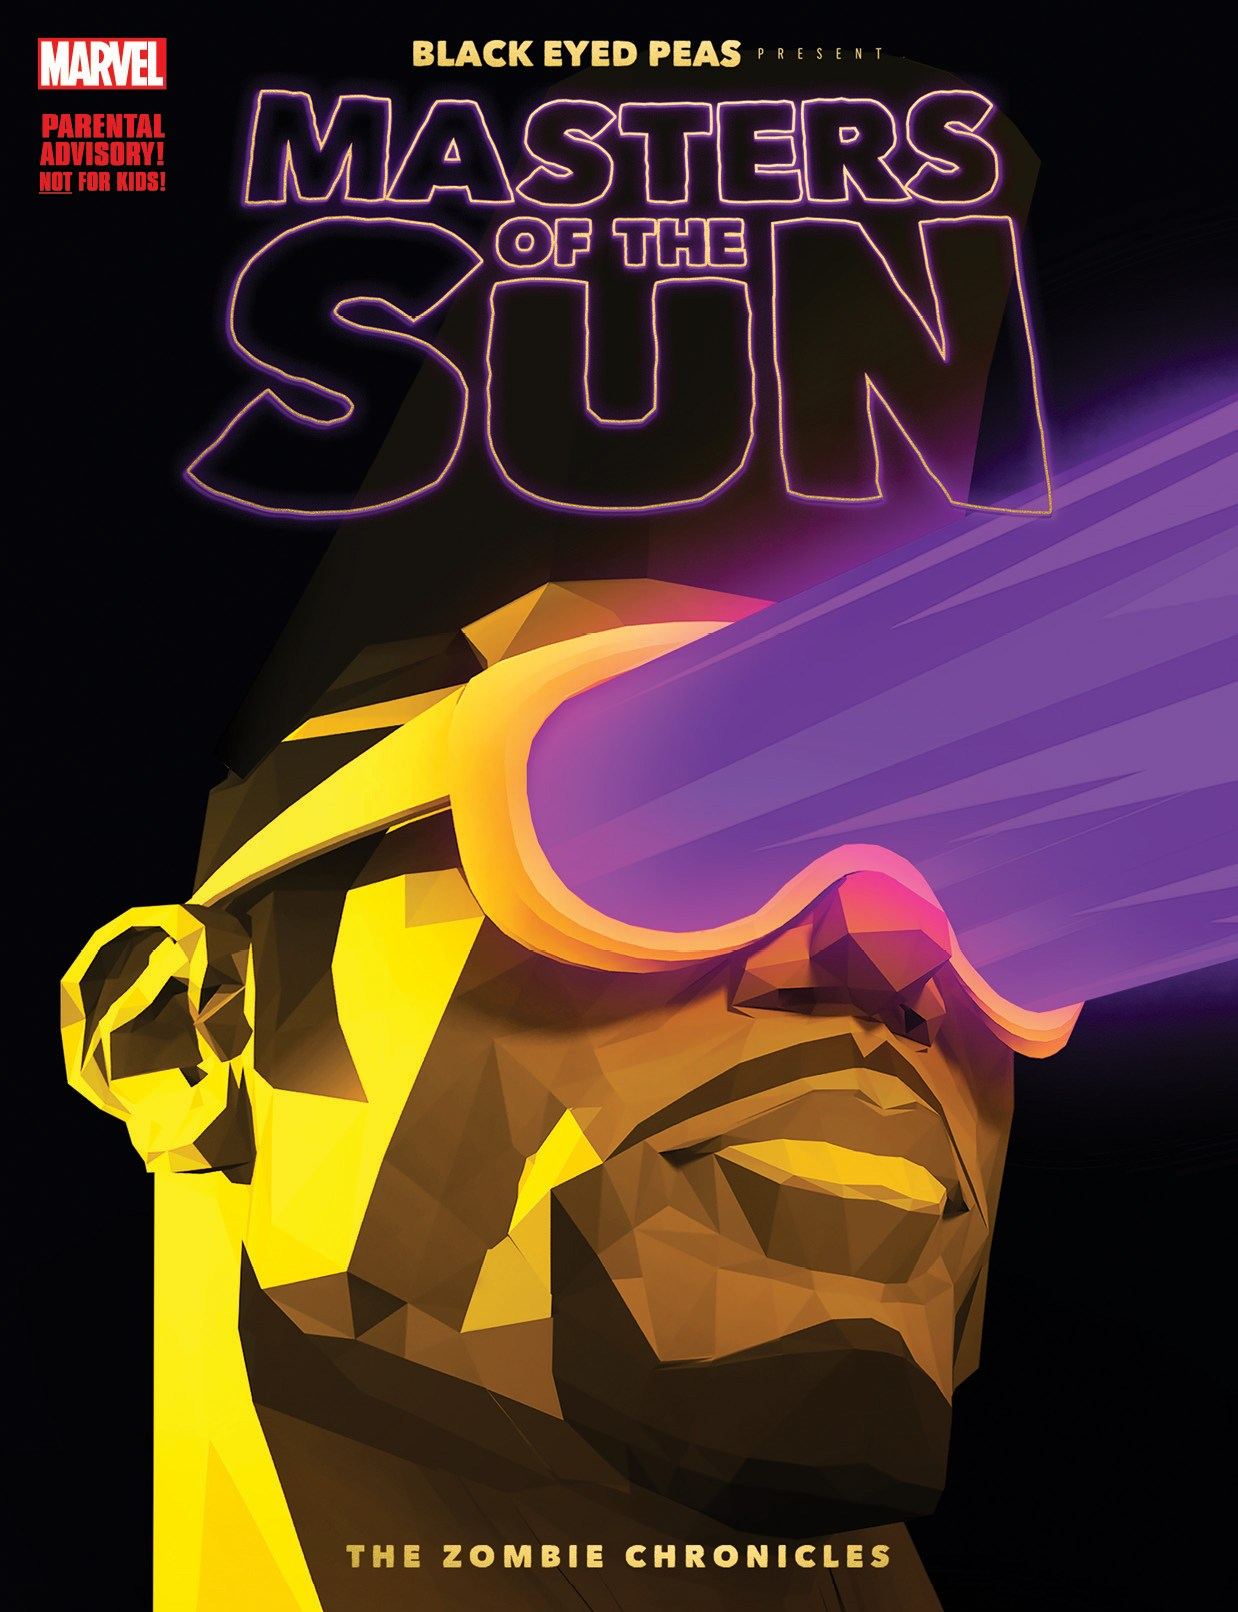 Black Eyed Peas Present: Masters of the Sun - The Zombie Chronicles Vol 1 1